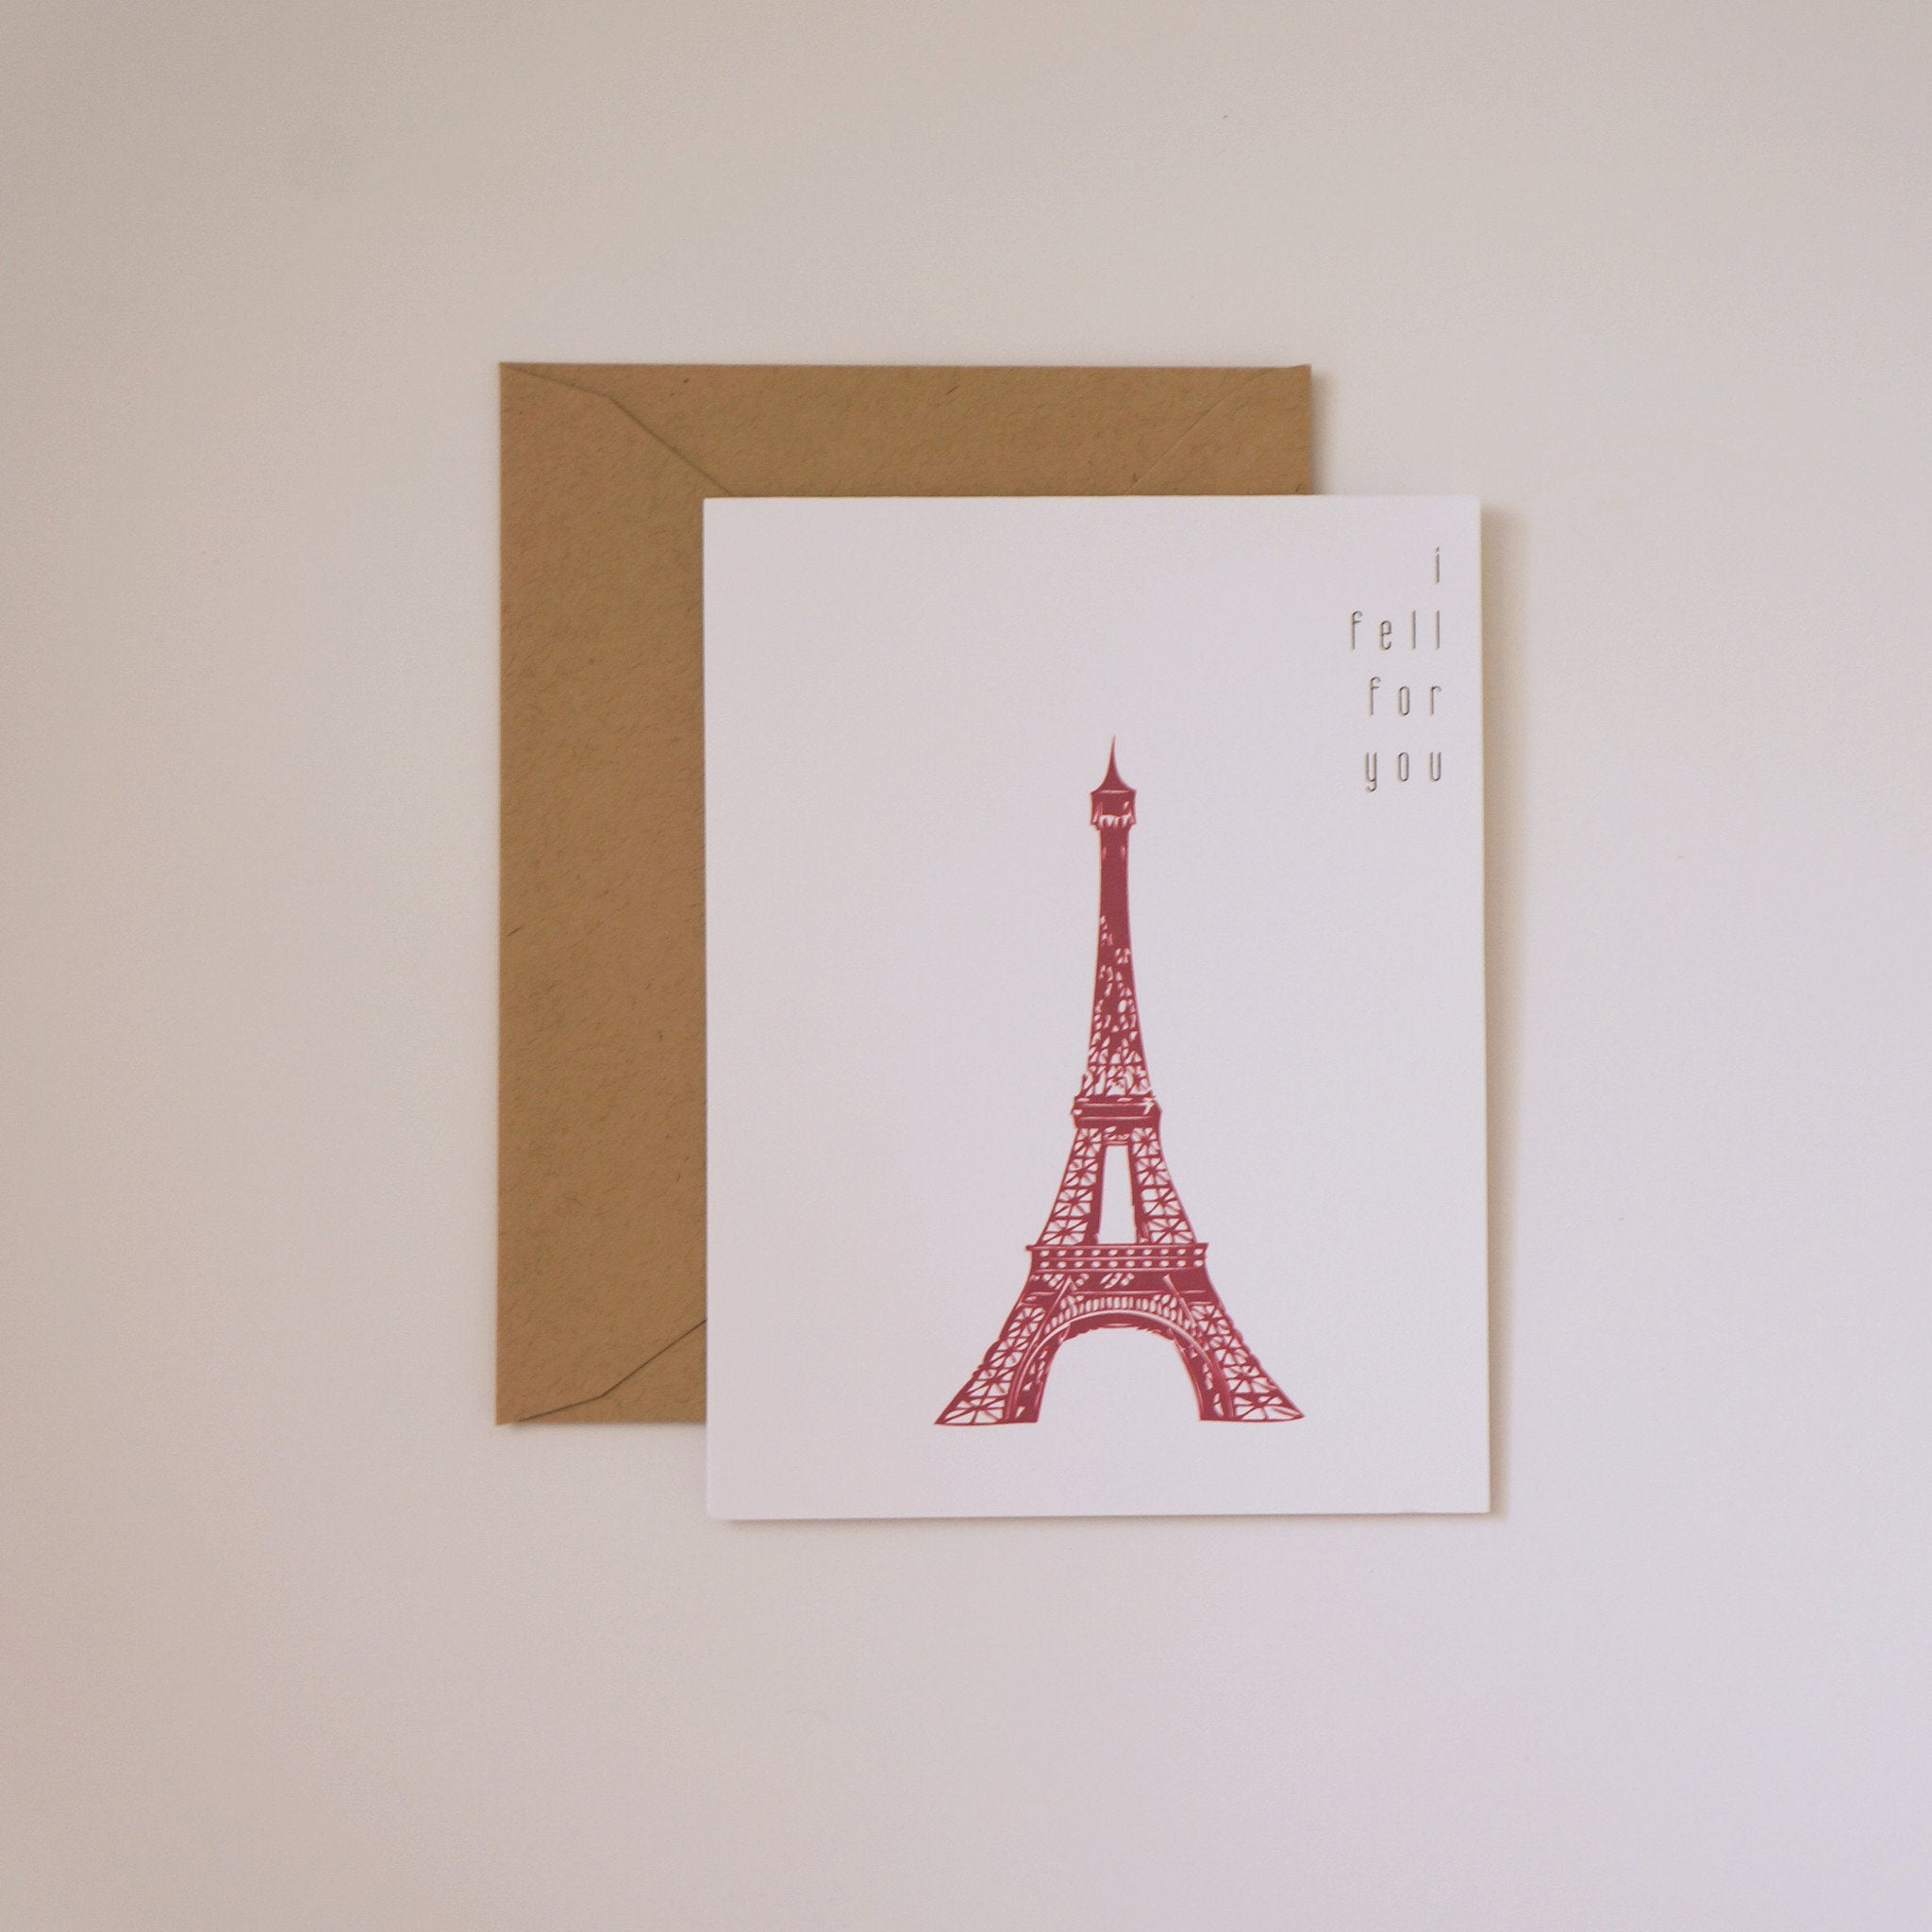 I Fell For You Valentine's Day Card French Inspired Paris - shop greeting cards, handmade stationery, & wedding invitations by dodeline design - 1